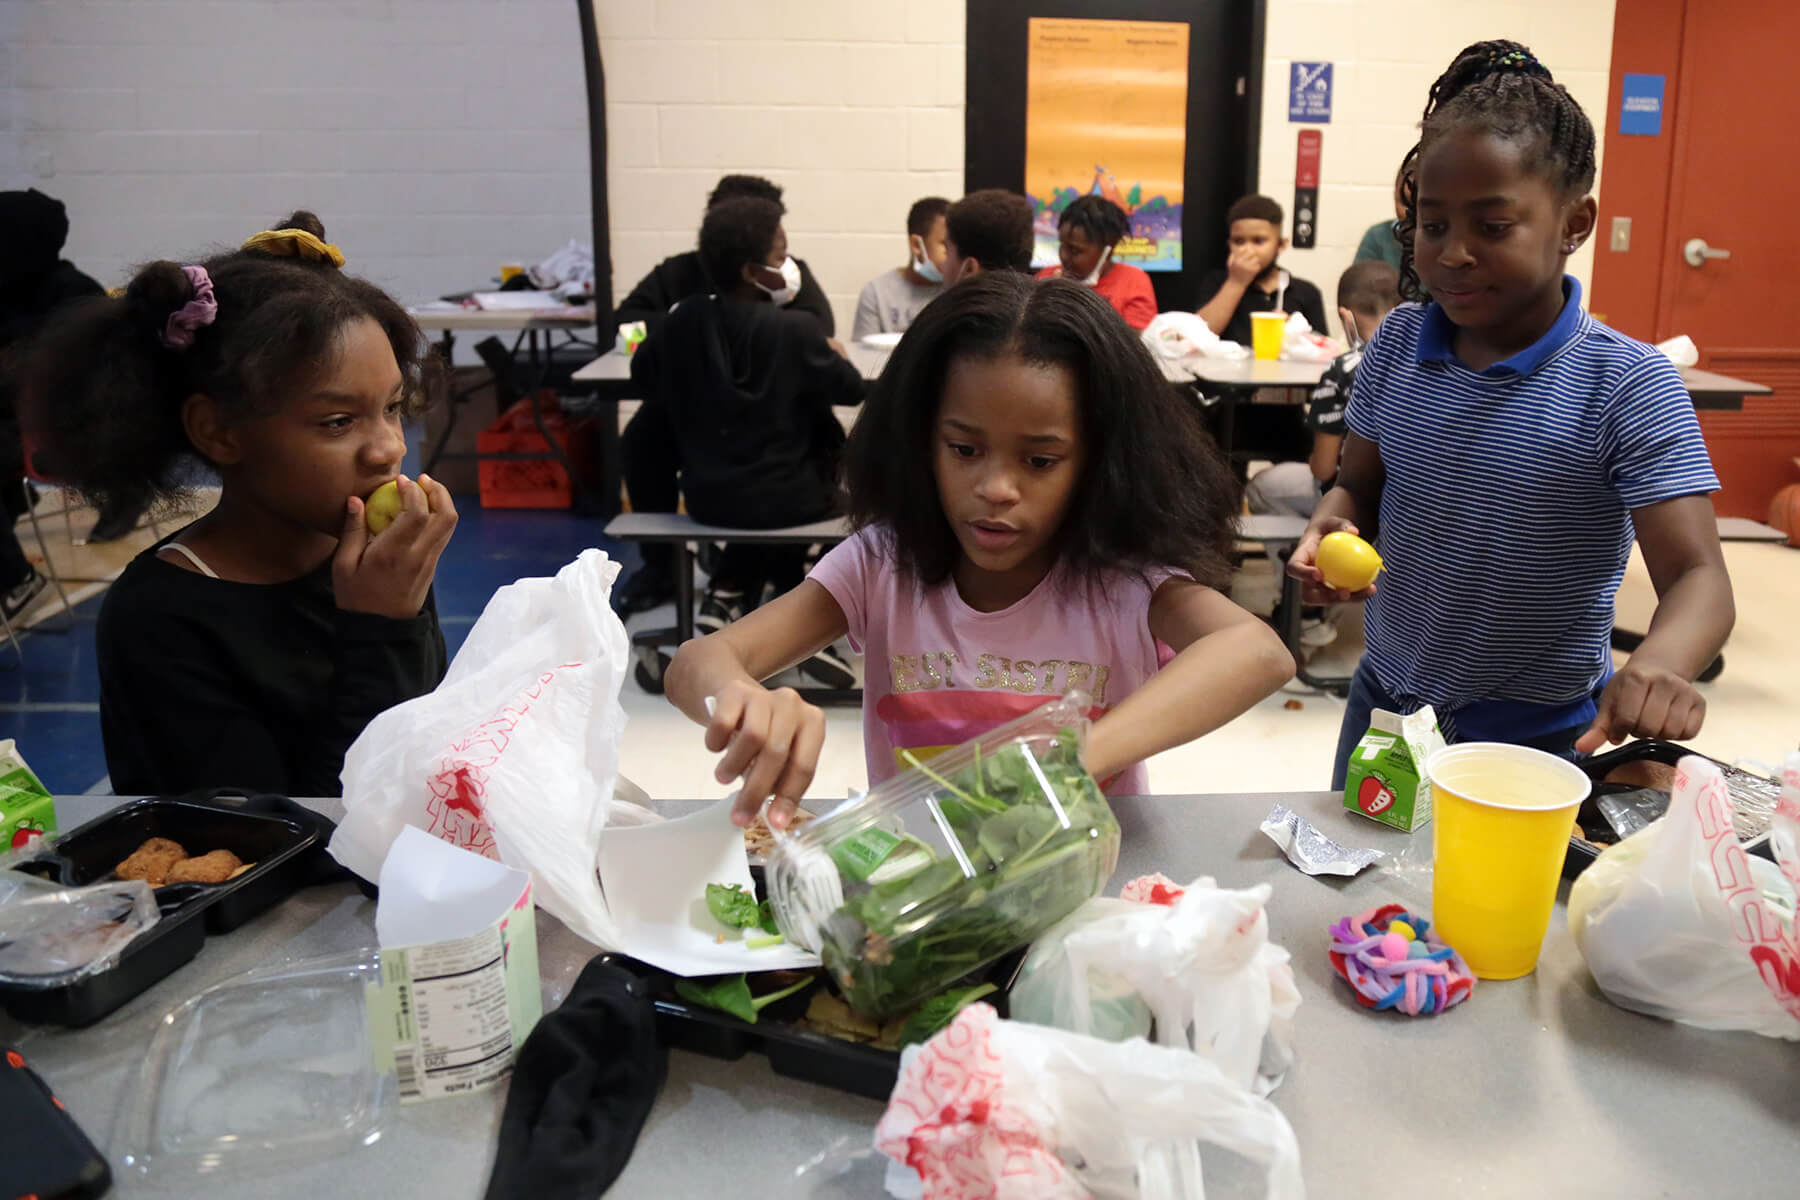 Essence Hamlin, 9, Leighton Staples, 8, and Demi Pirl, 7, (left to right) eat dinner at the Boys & Girls Clubs of Western Pennsylvania Duquesne clubhouse on March 11. (Photo by Ryan Loew/PublicSource)